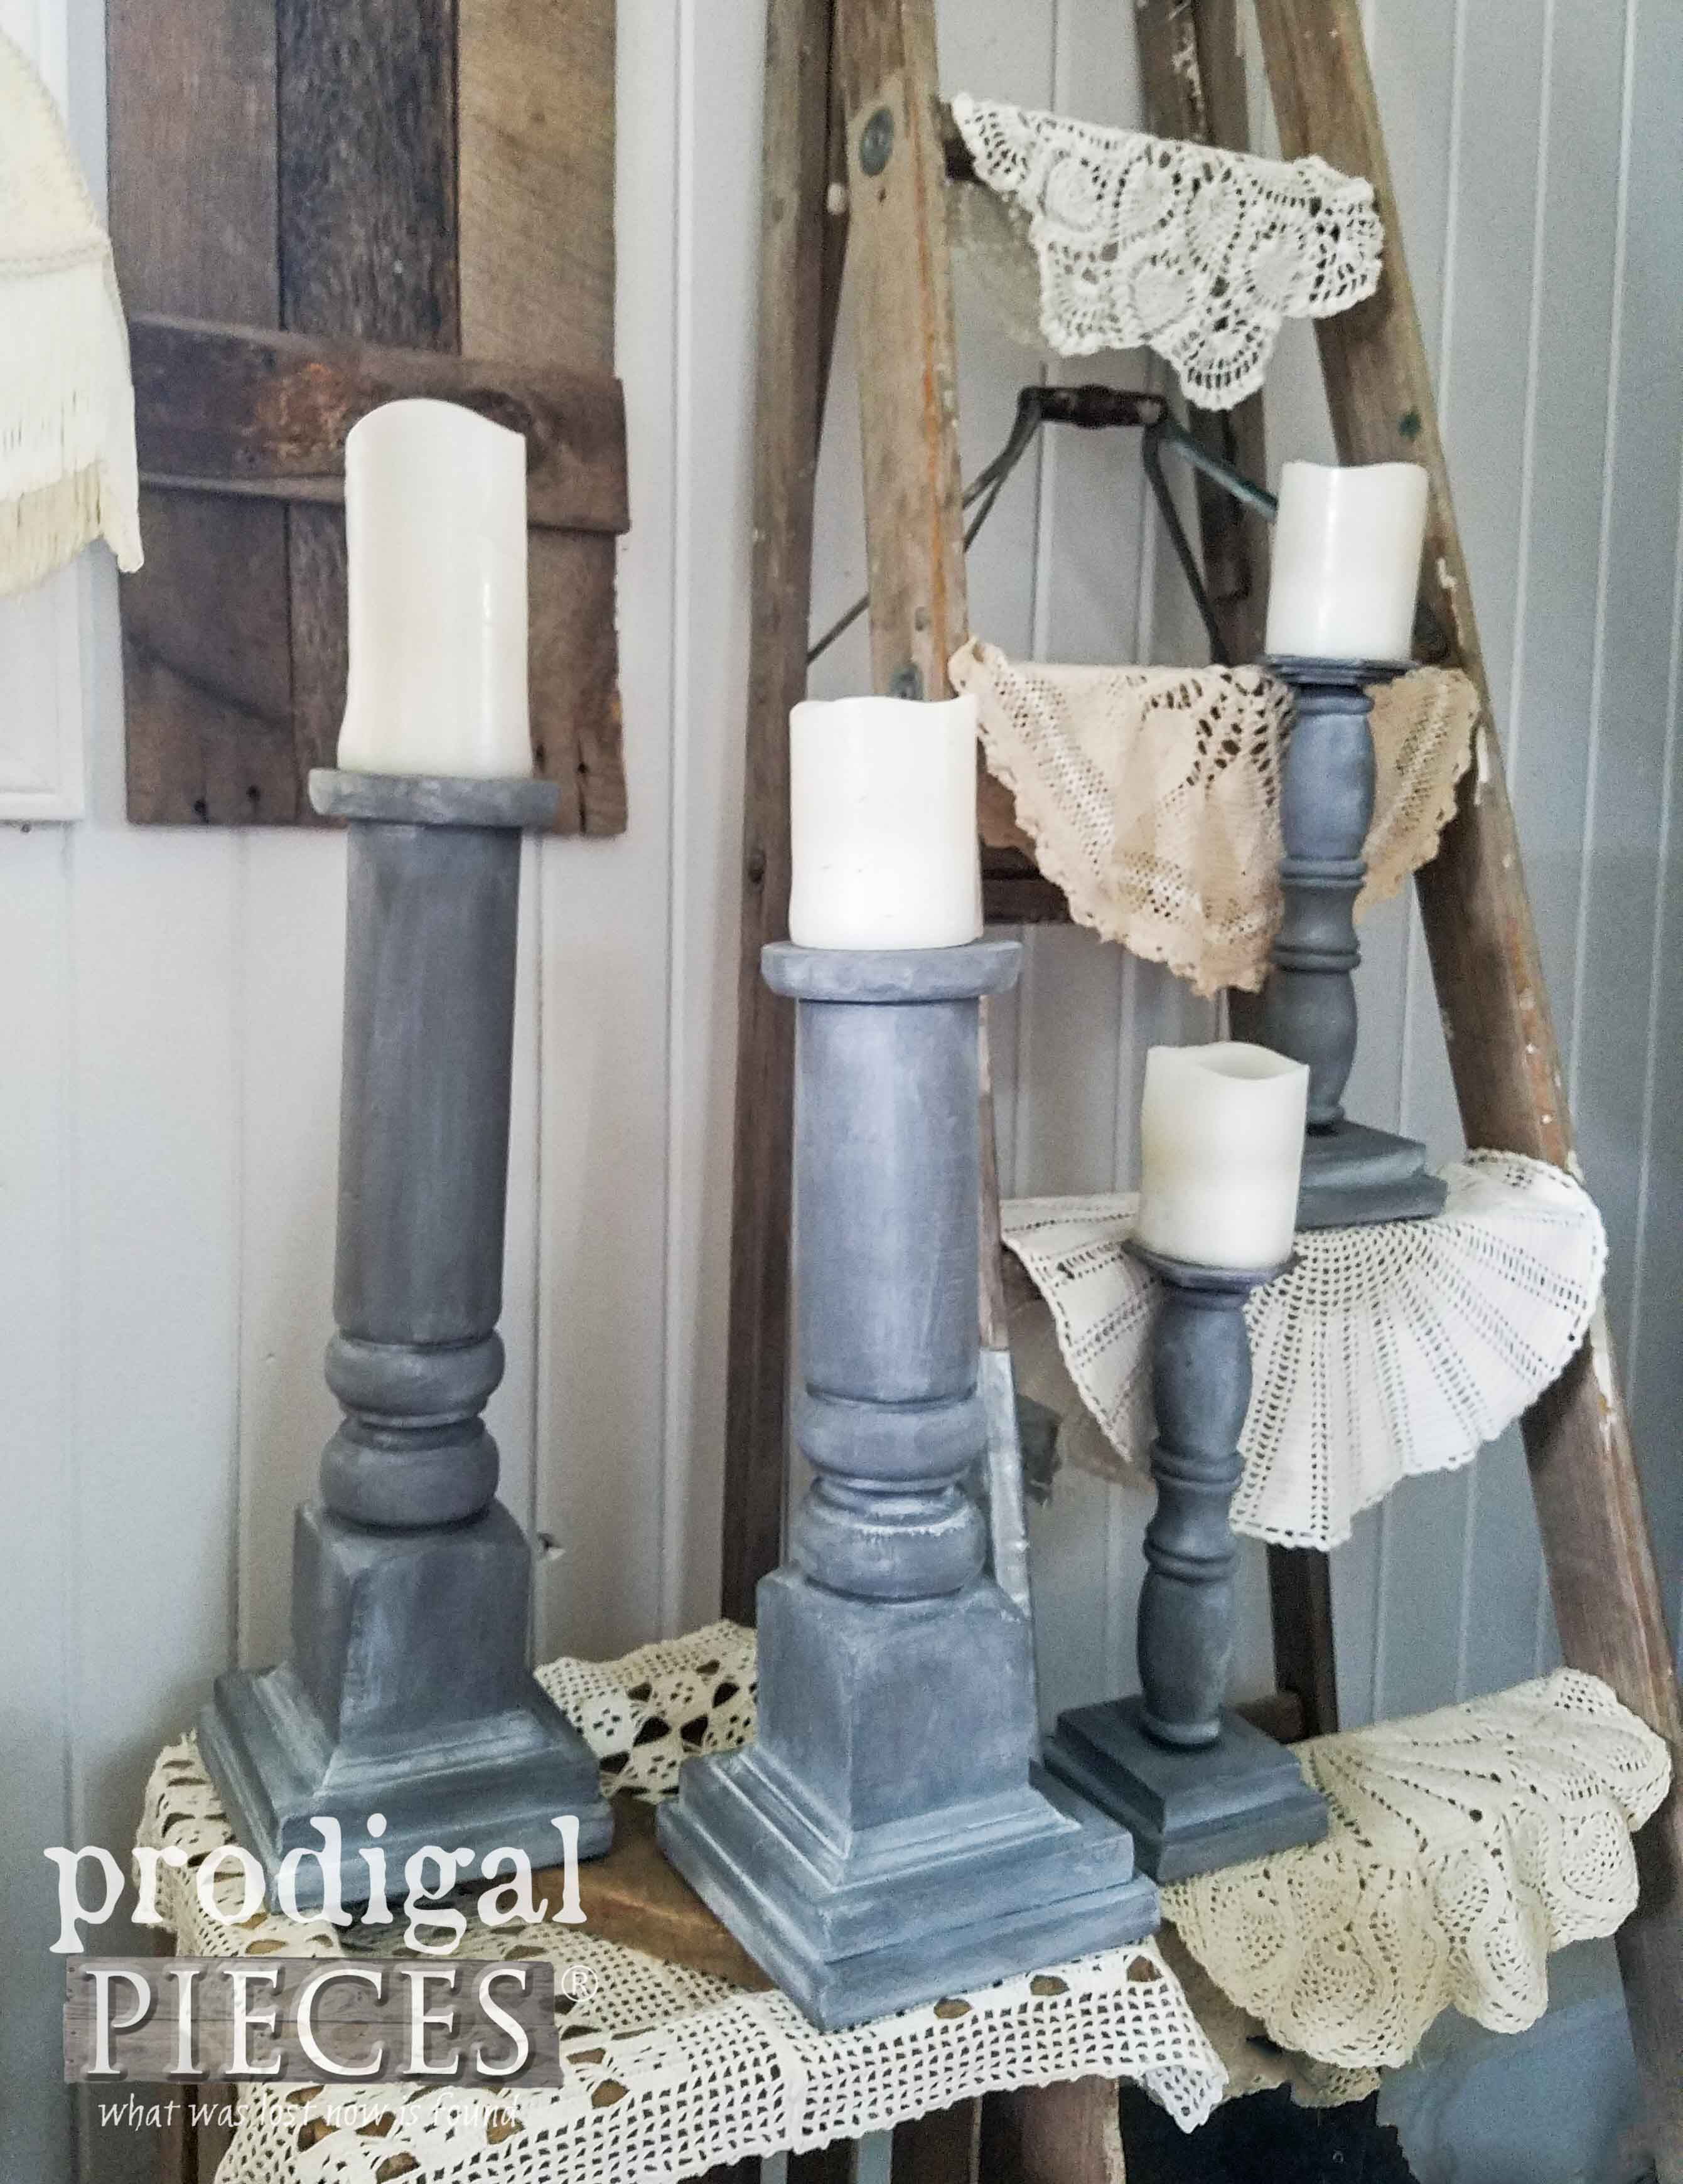 DIY Upcycled Candlesticks from Repurposed Materials by Prodigal Pieces | prodigalpieces.com